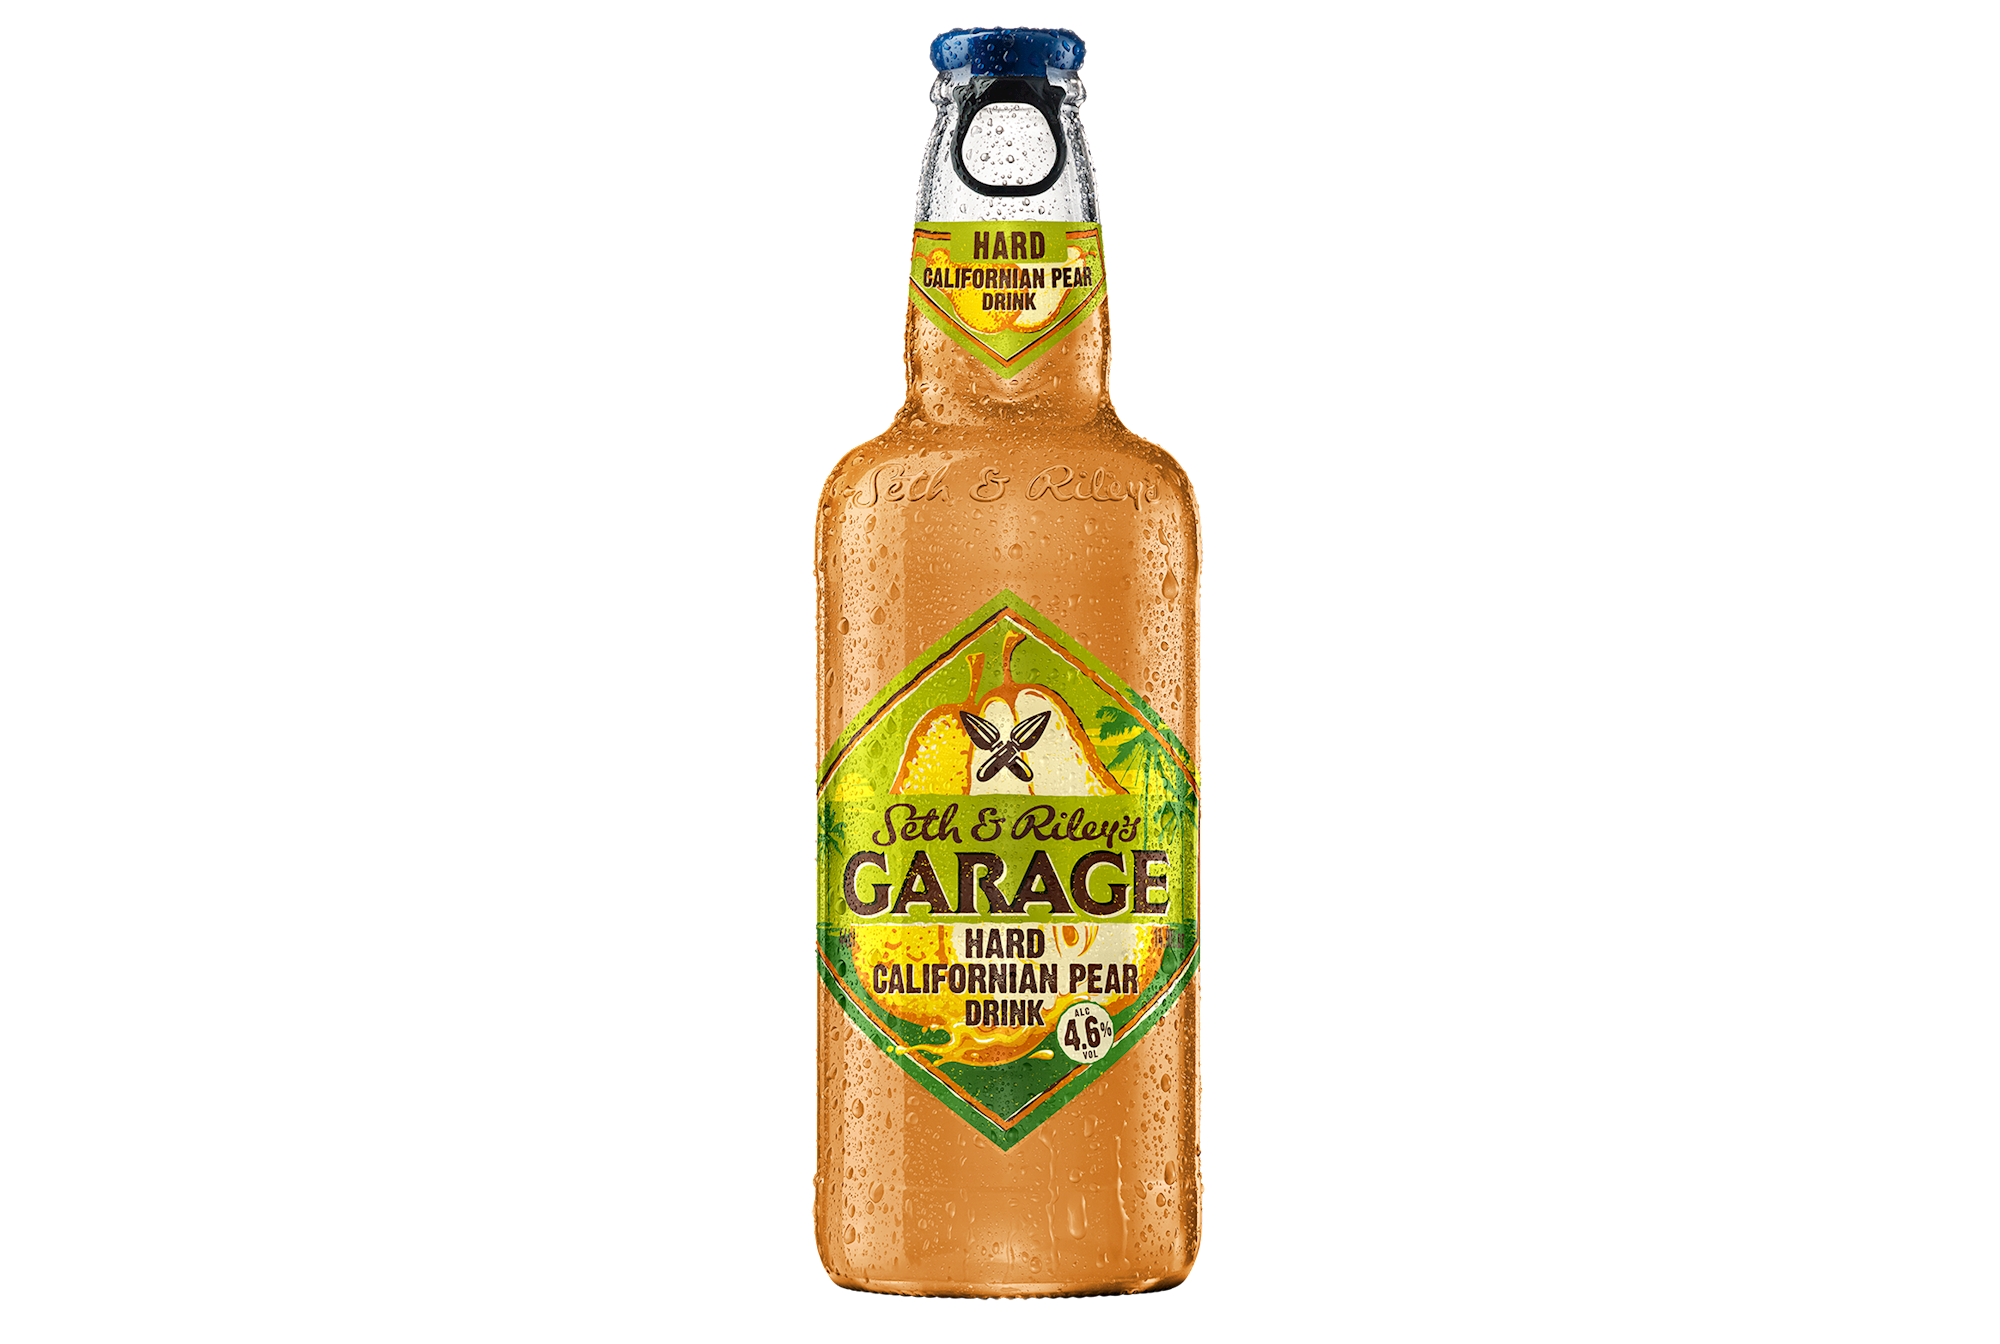 garage-hard-californian-pear-drink